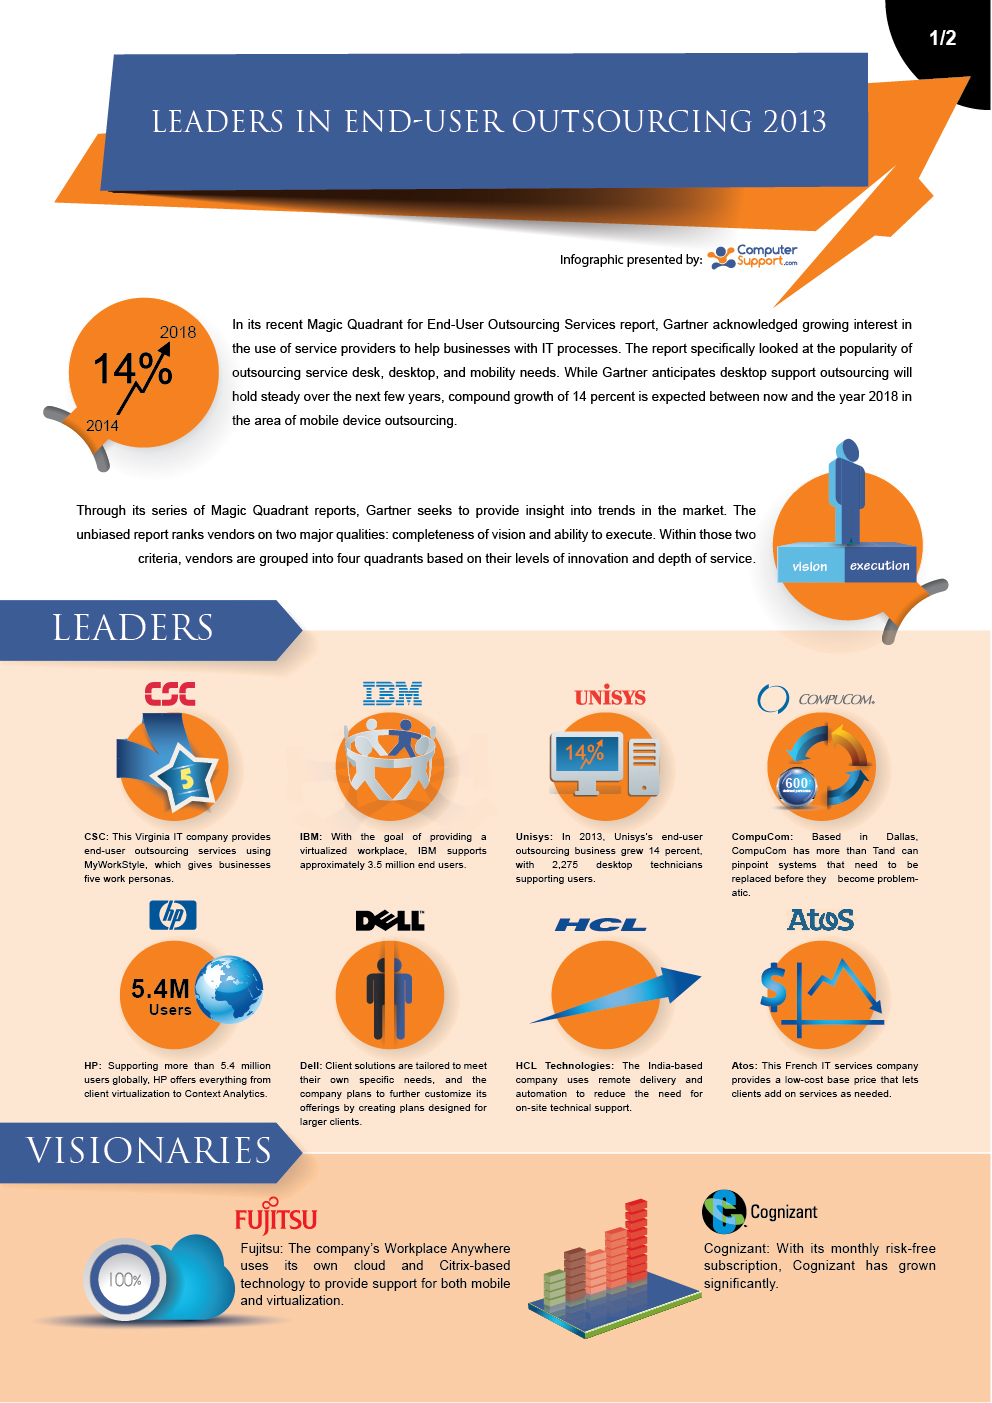 Leaders In End-user Outsourcing 2013